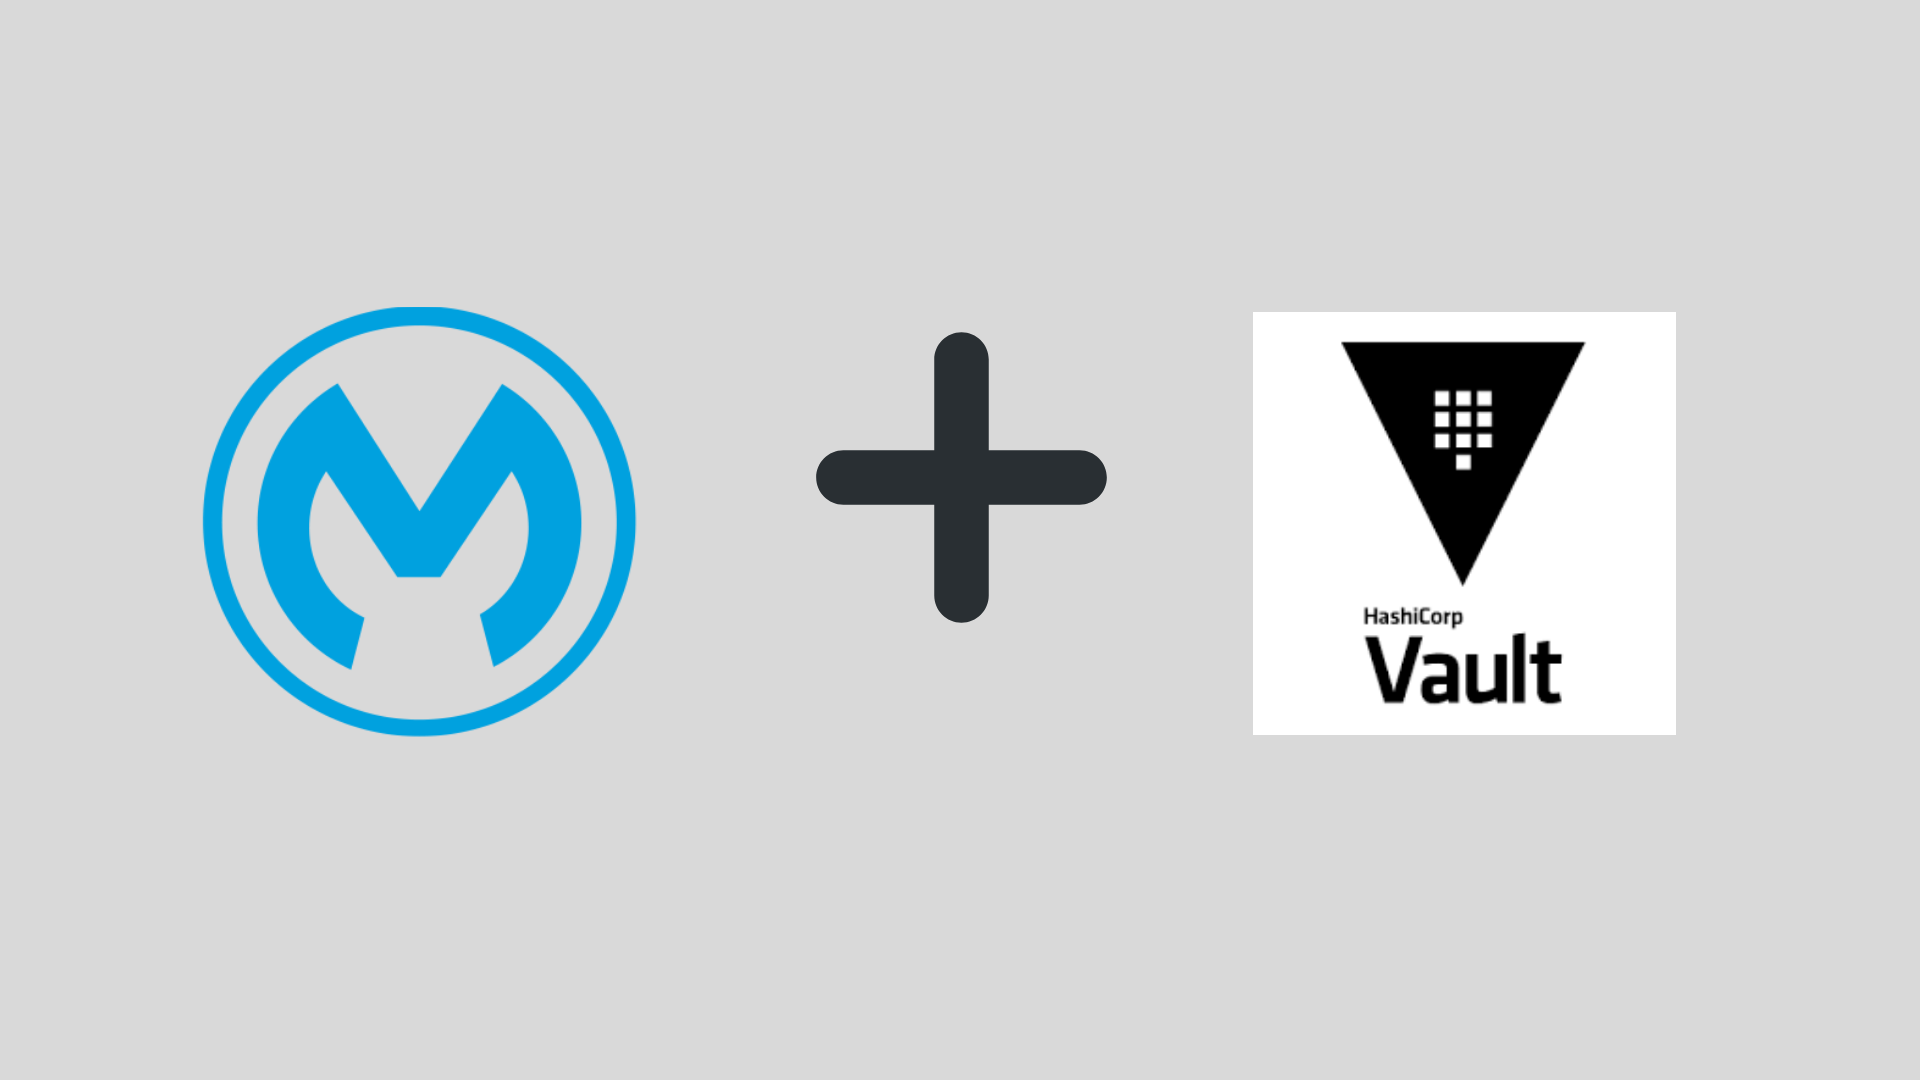 HashiCorp Vault Connector for Mule 4 - BPI - The destination